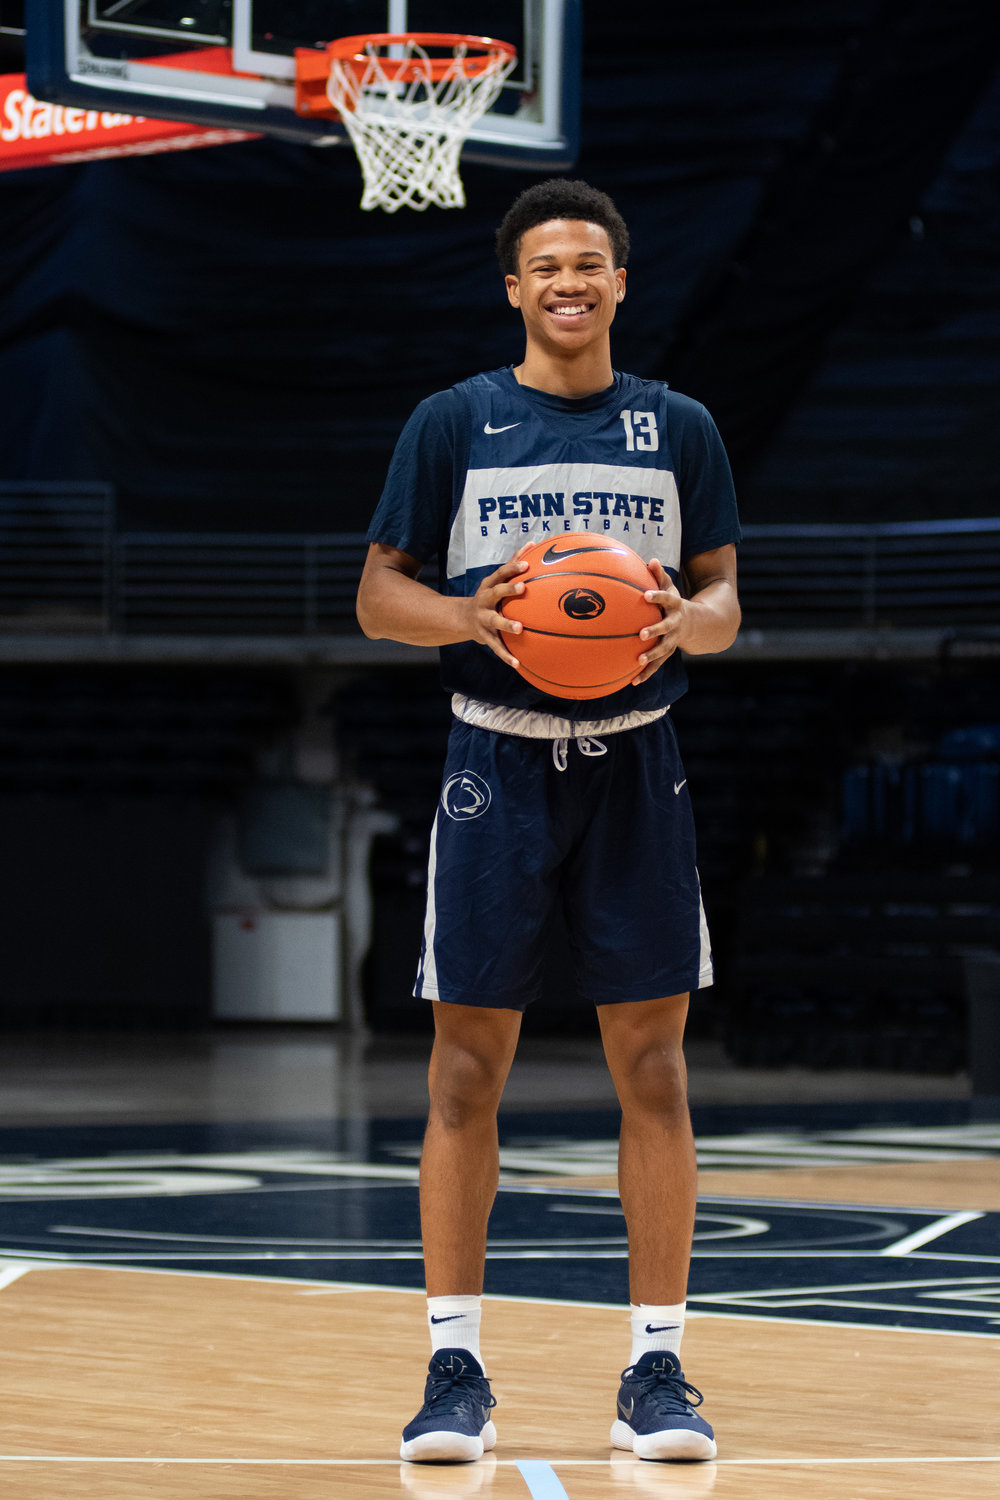 Guard Rasir Bolton (13) poses during Penn State men's basketball media day at the Bryce Jordan Center on Tuesday Oct. 16, 2018. | Photo by: Noah Riffe